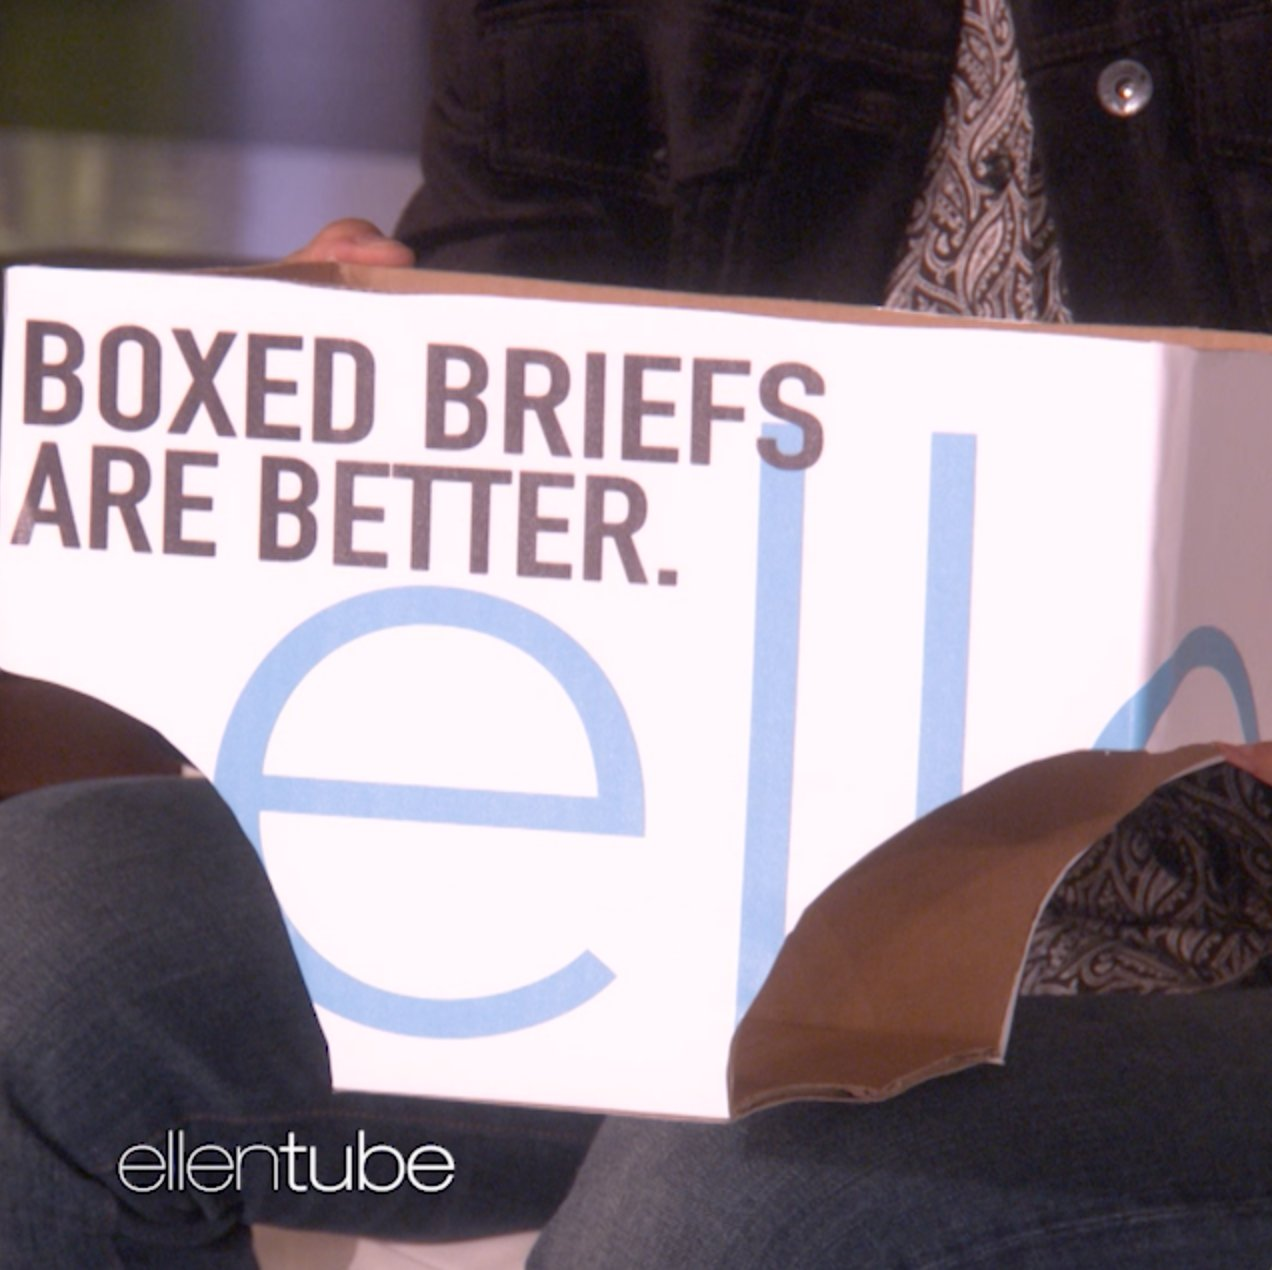 They say boxed is better. Maybe not for everything? https://t.co/HriMSIywFR